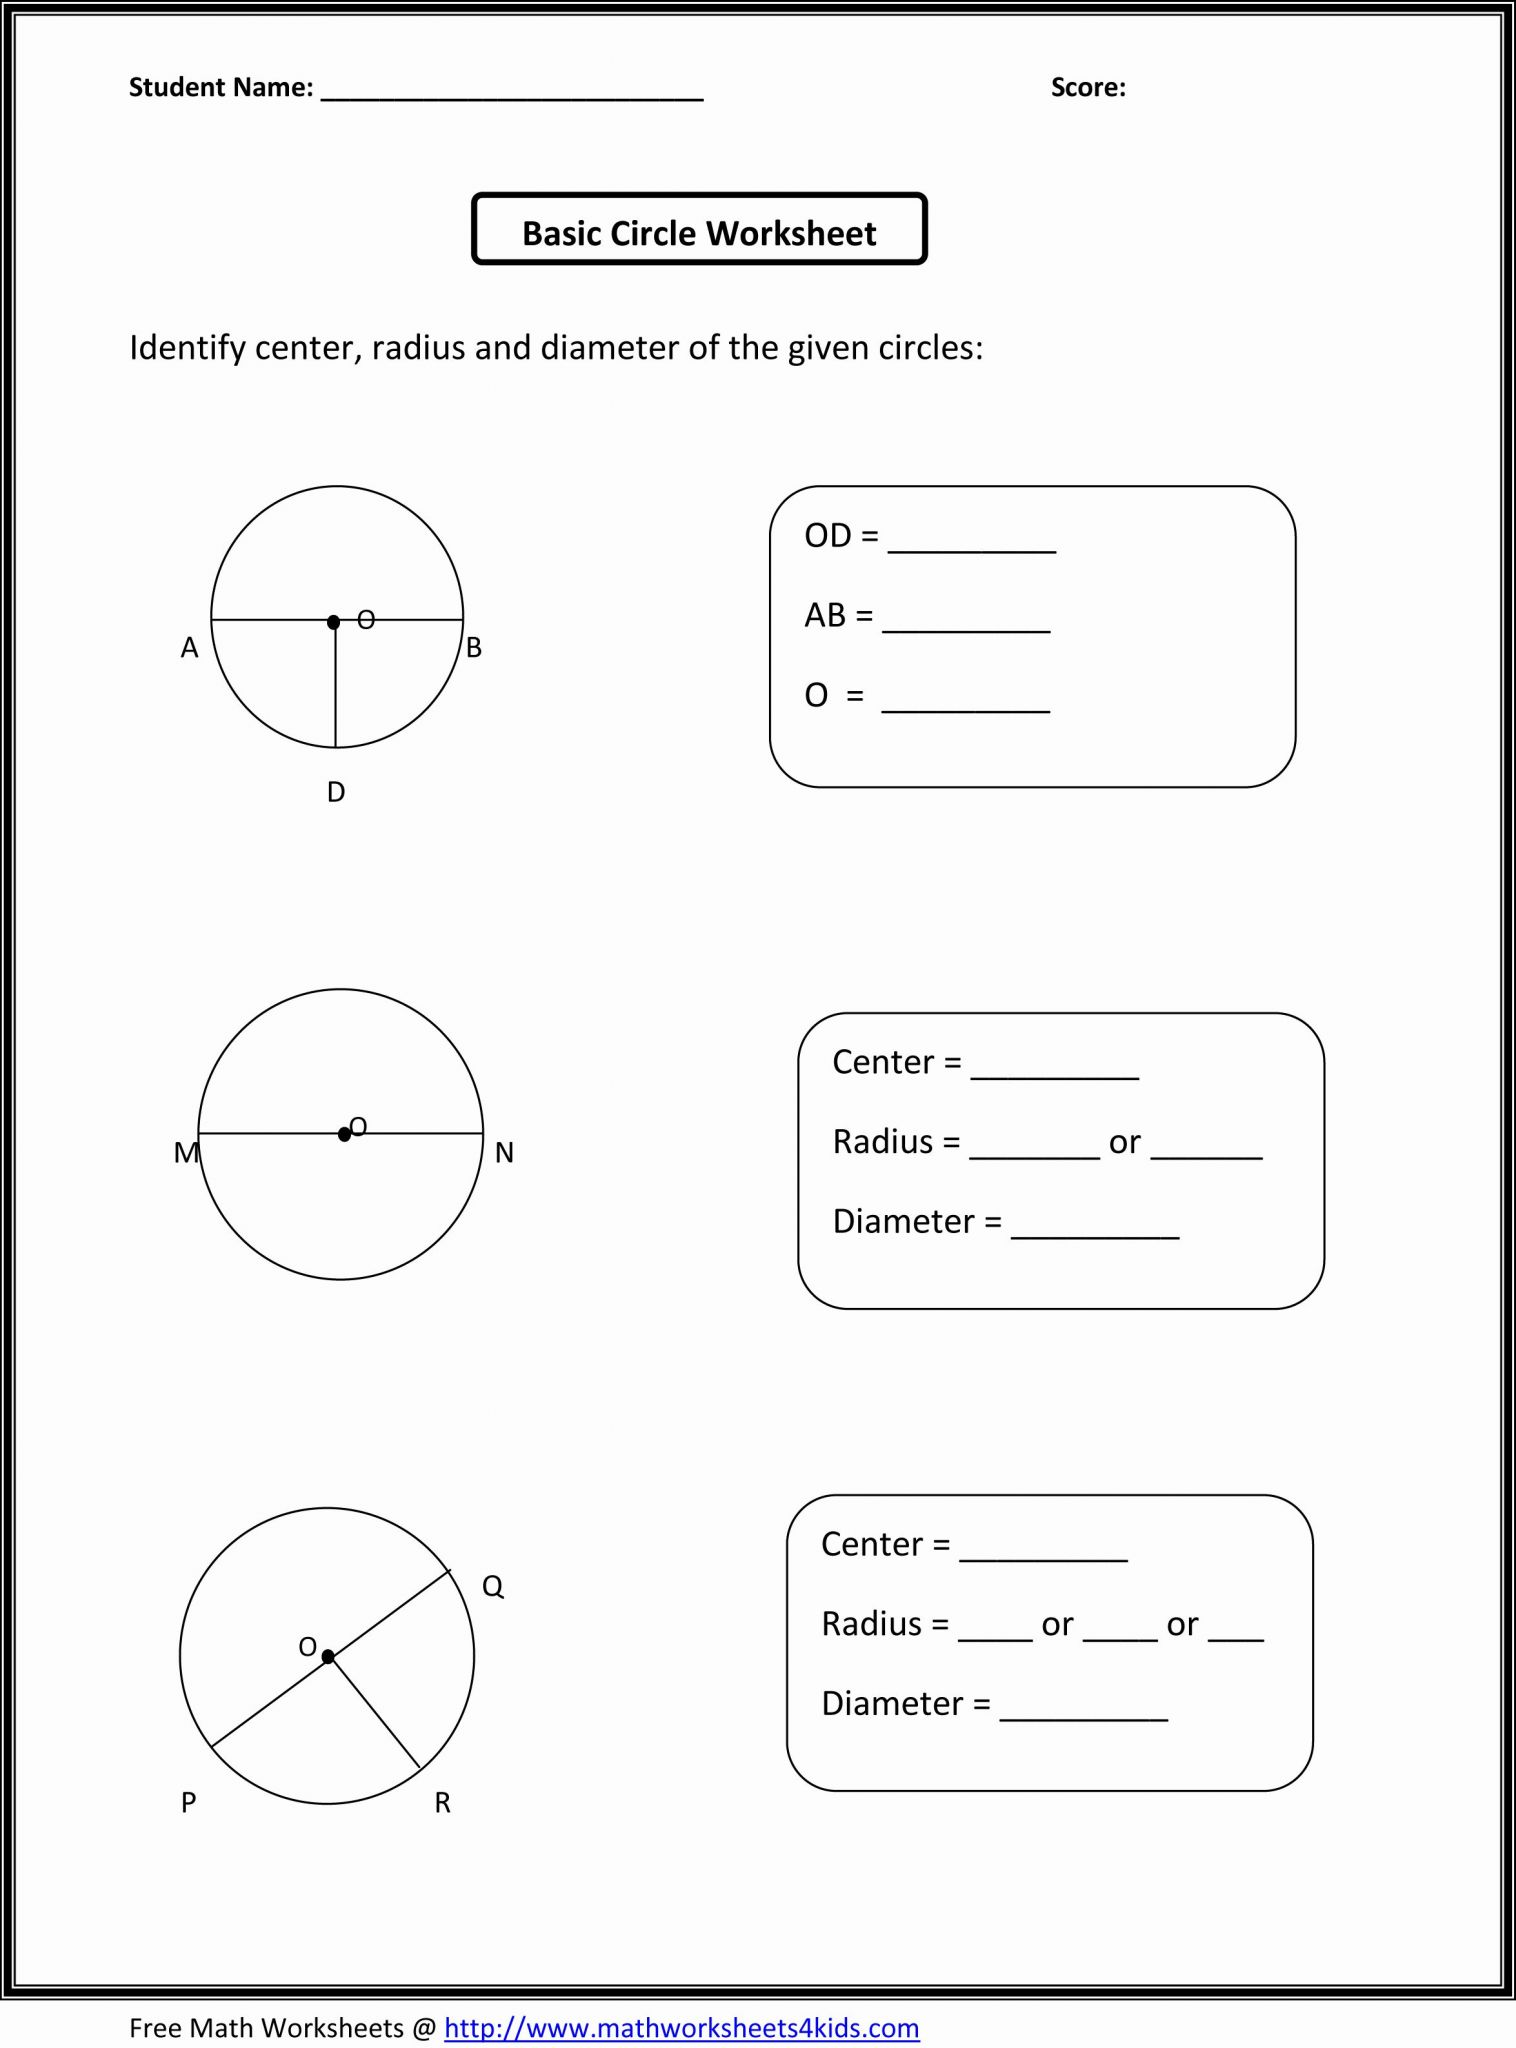 6th Grade Math Assessment Test Printable That Are Smart